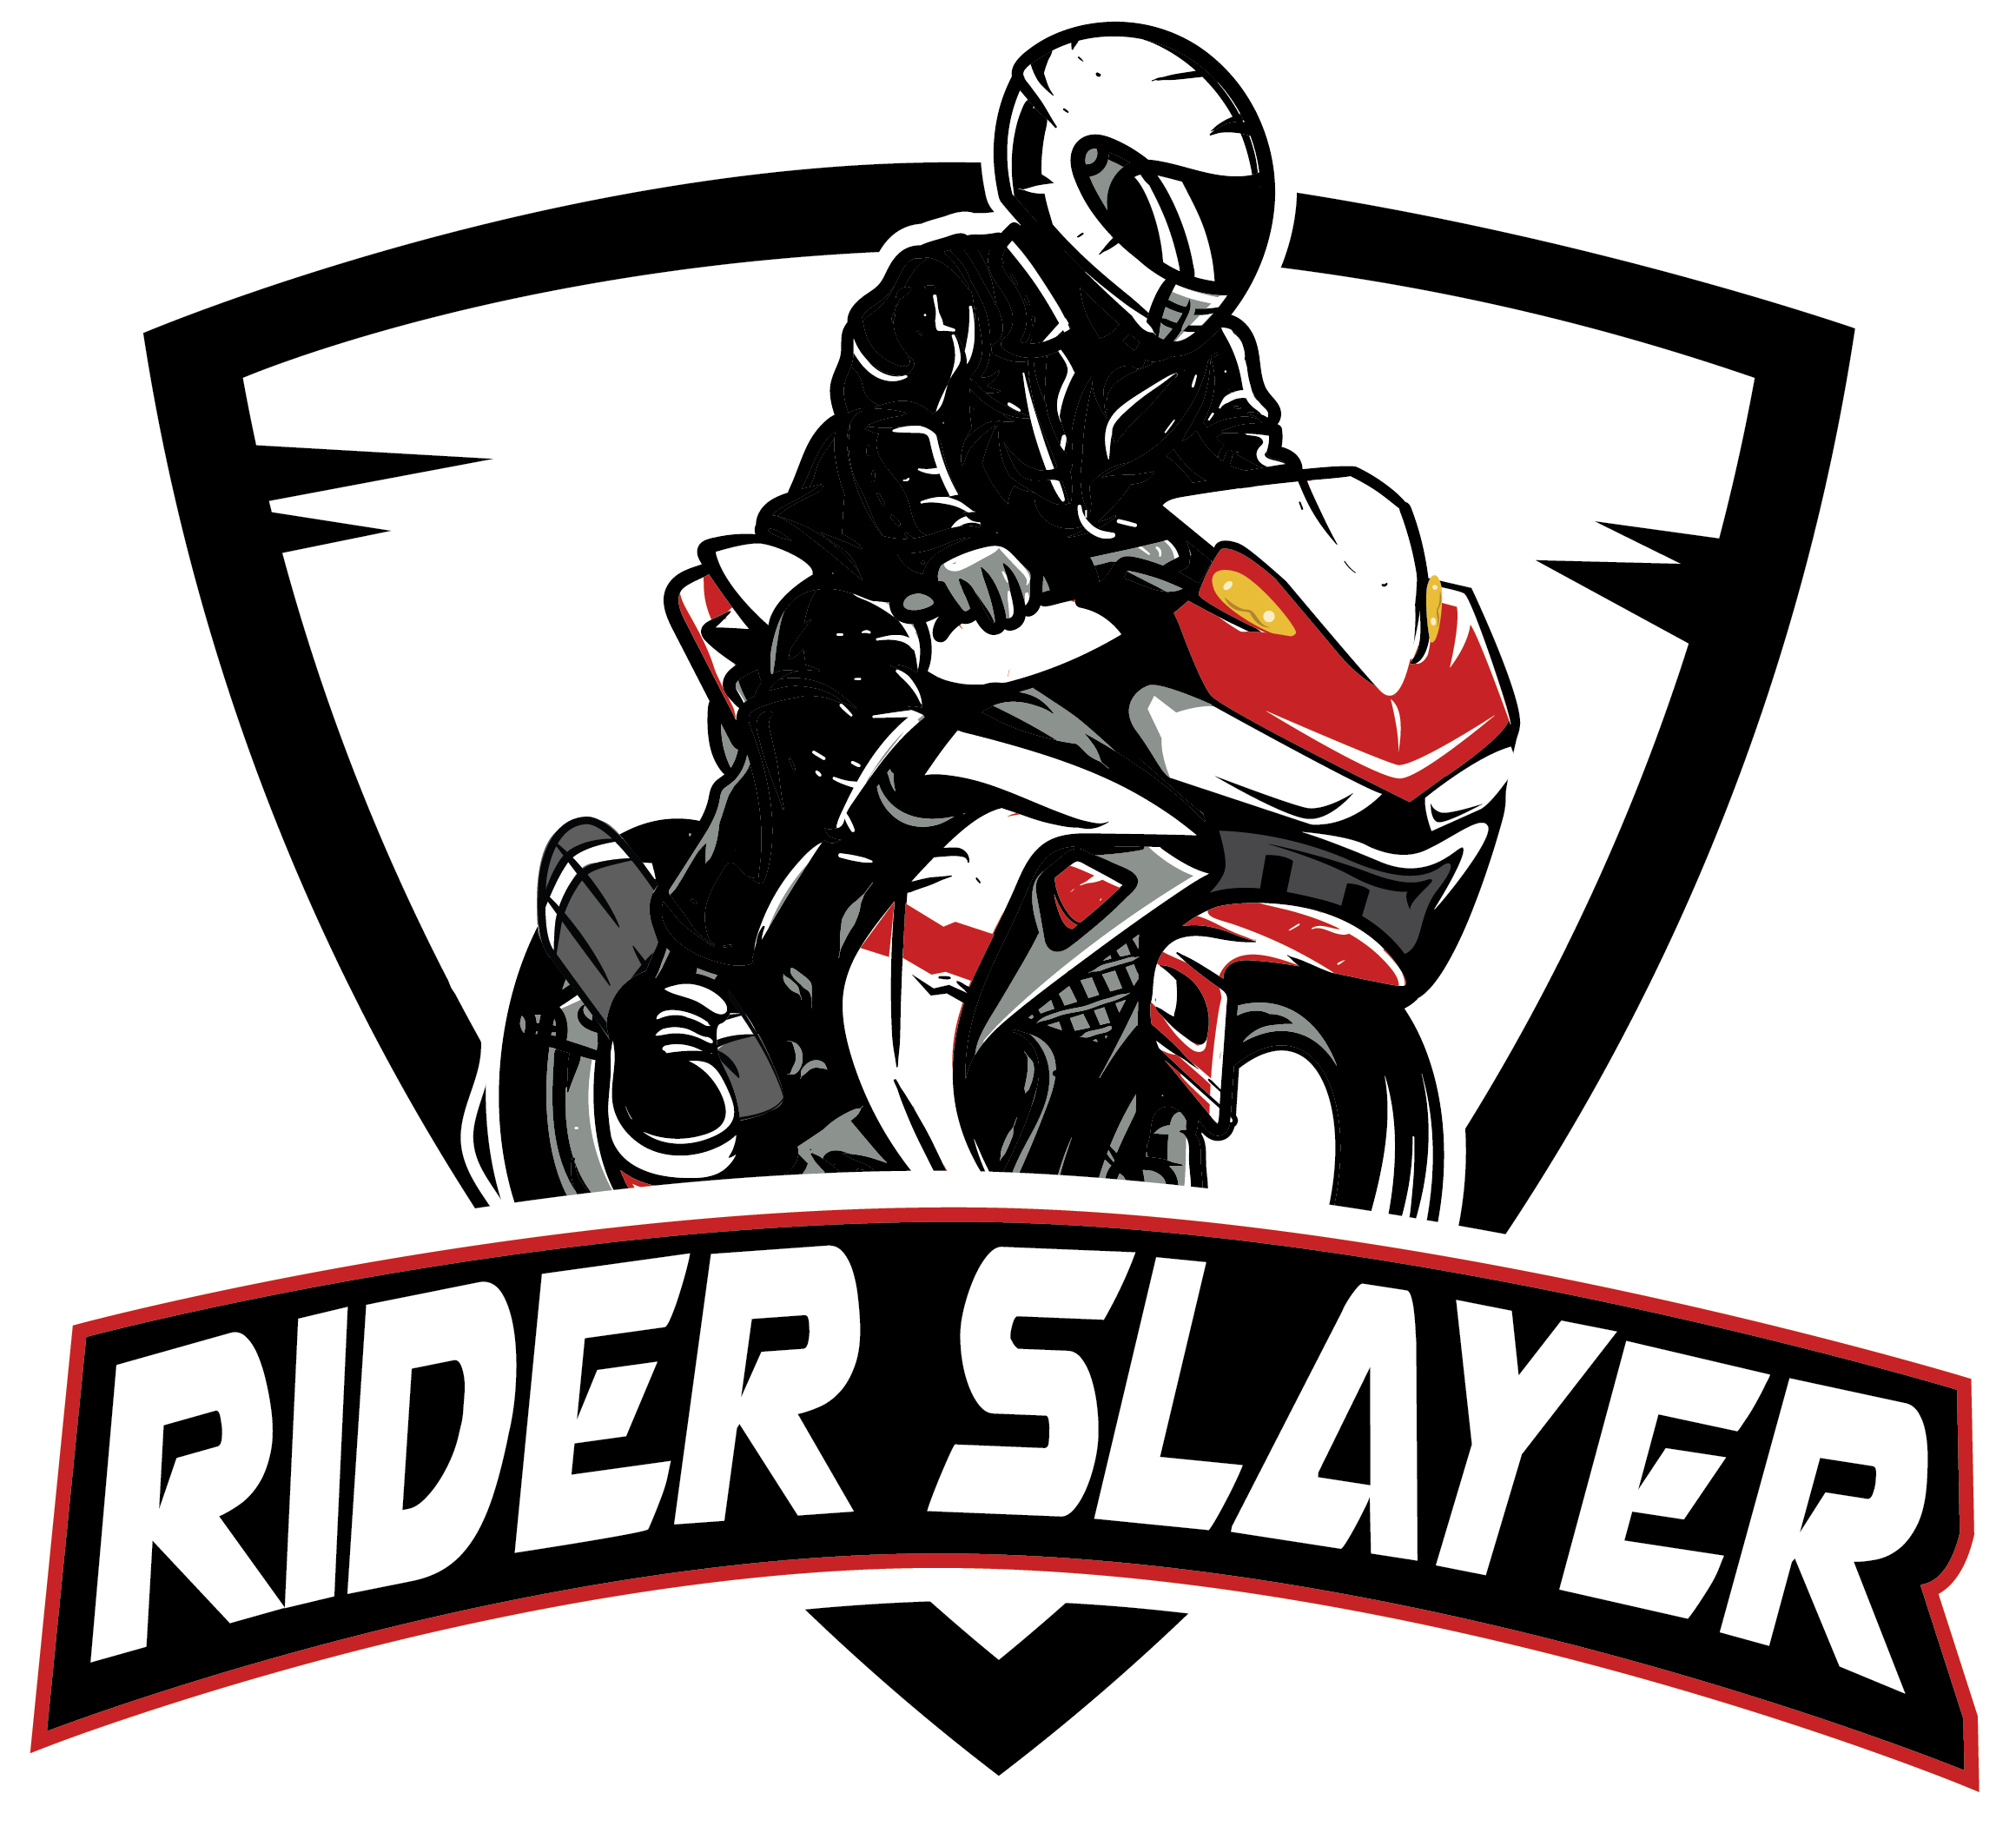 Pit-Stop of Rider-Slayer